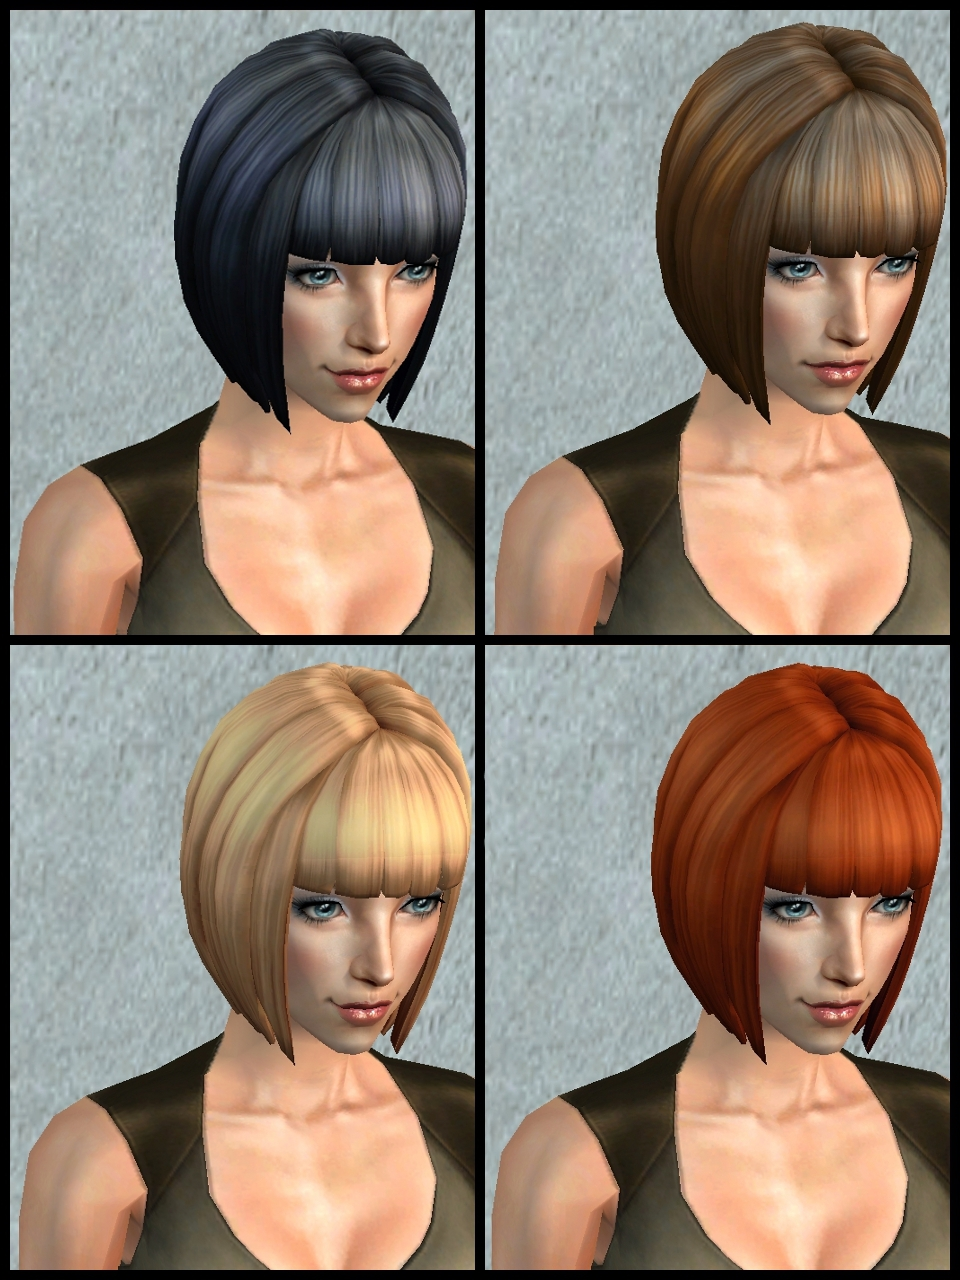 Theninthwavesims The Sims 2 The Sims 4 Bg Short Bob For The Sims 2